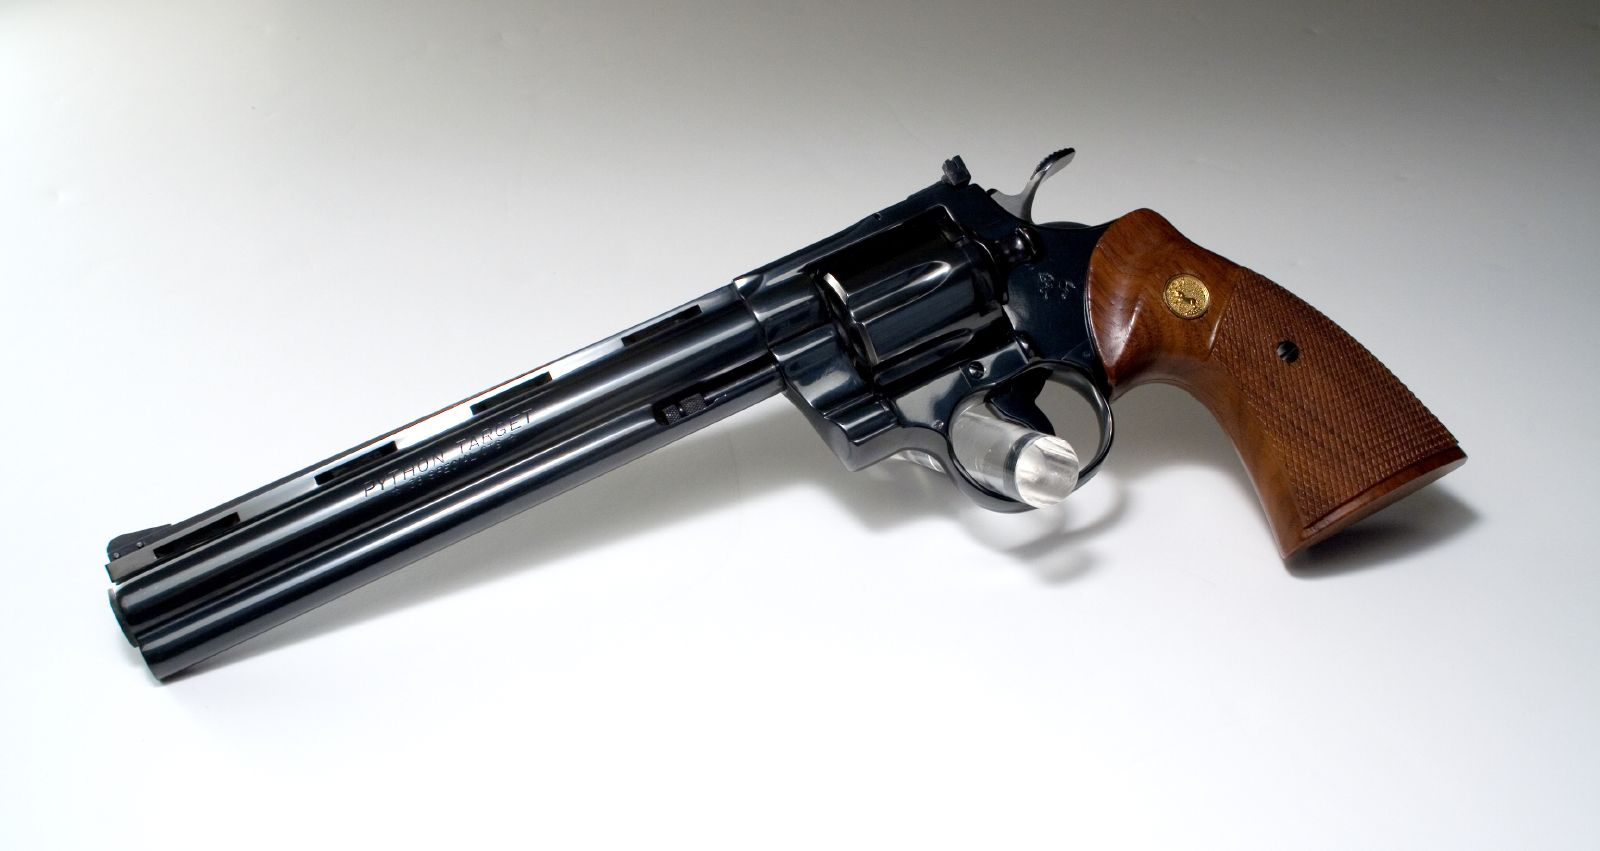 colt personals 7) colt m1911 norwegian: colt s/n c18501 to c18850 and norway s/n 1 to 5000 = june 1915 to ww ii (400 colt 1911's 45 caliber purchased and issued to norwegian navy may 1917, 300 colt 1911 45acp pistols purchased in 1915.